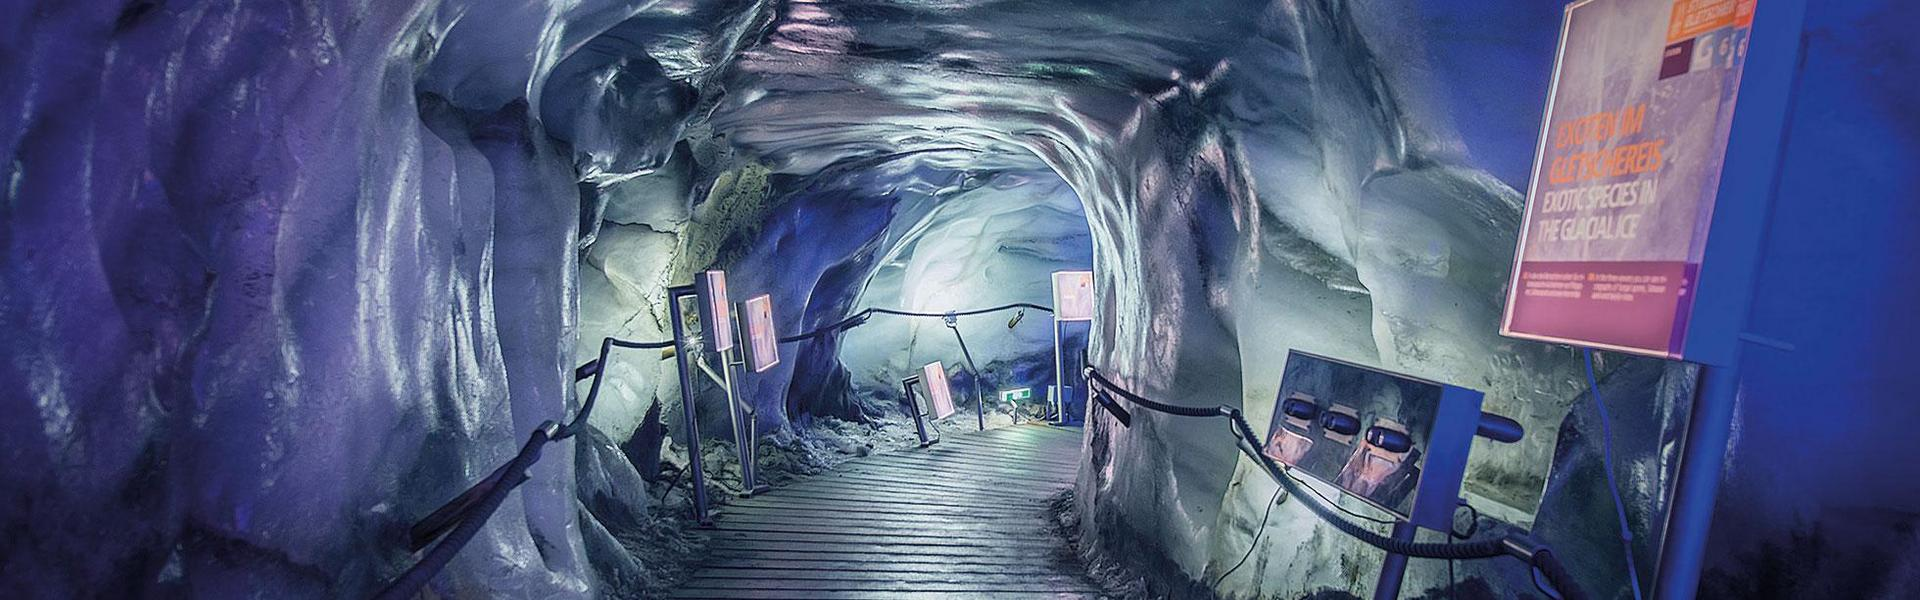 Tour of the Stubai Glacier ice grotto